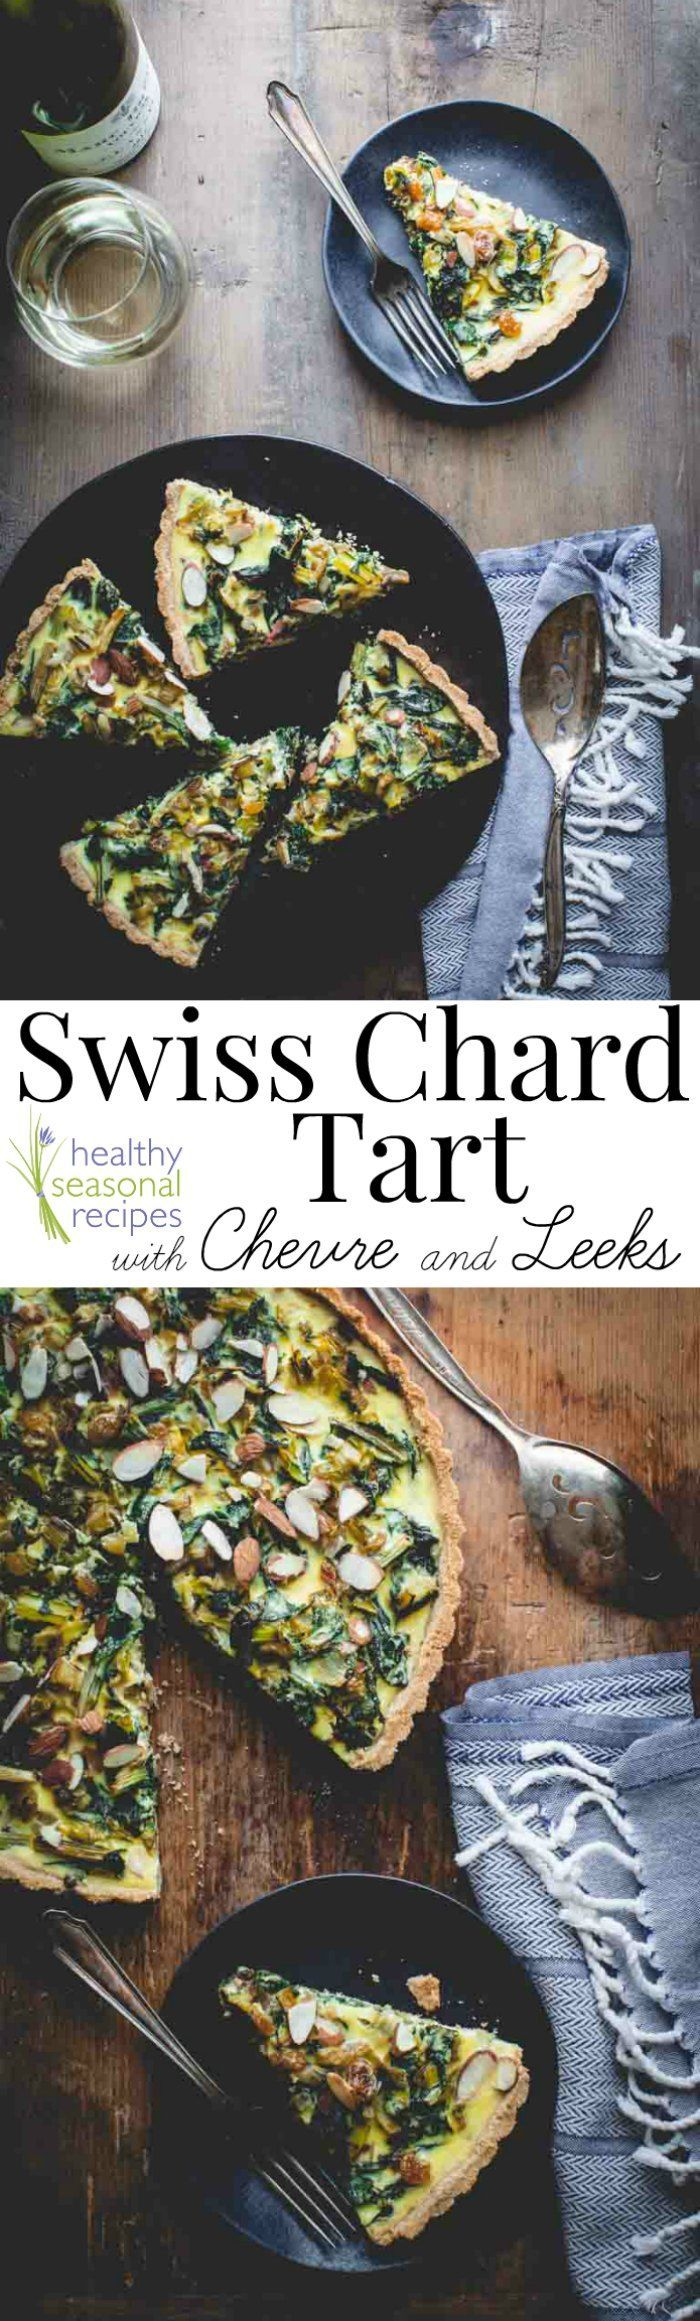 Blog post at Healthy Seasonal Recipes : This Swiss Chard tart with Chevre and Leeks is a must make if you are looking for a fancy vegetarian entree for the holidays. It is filled w[..]